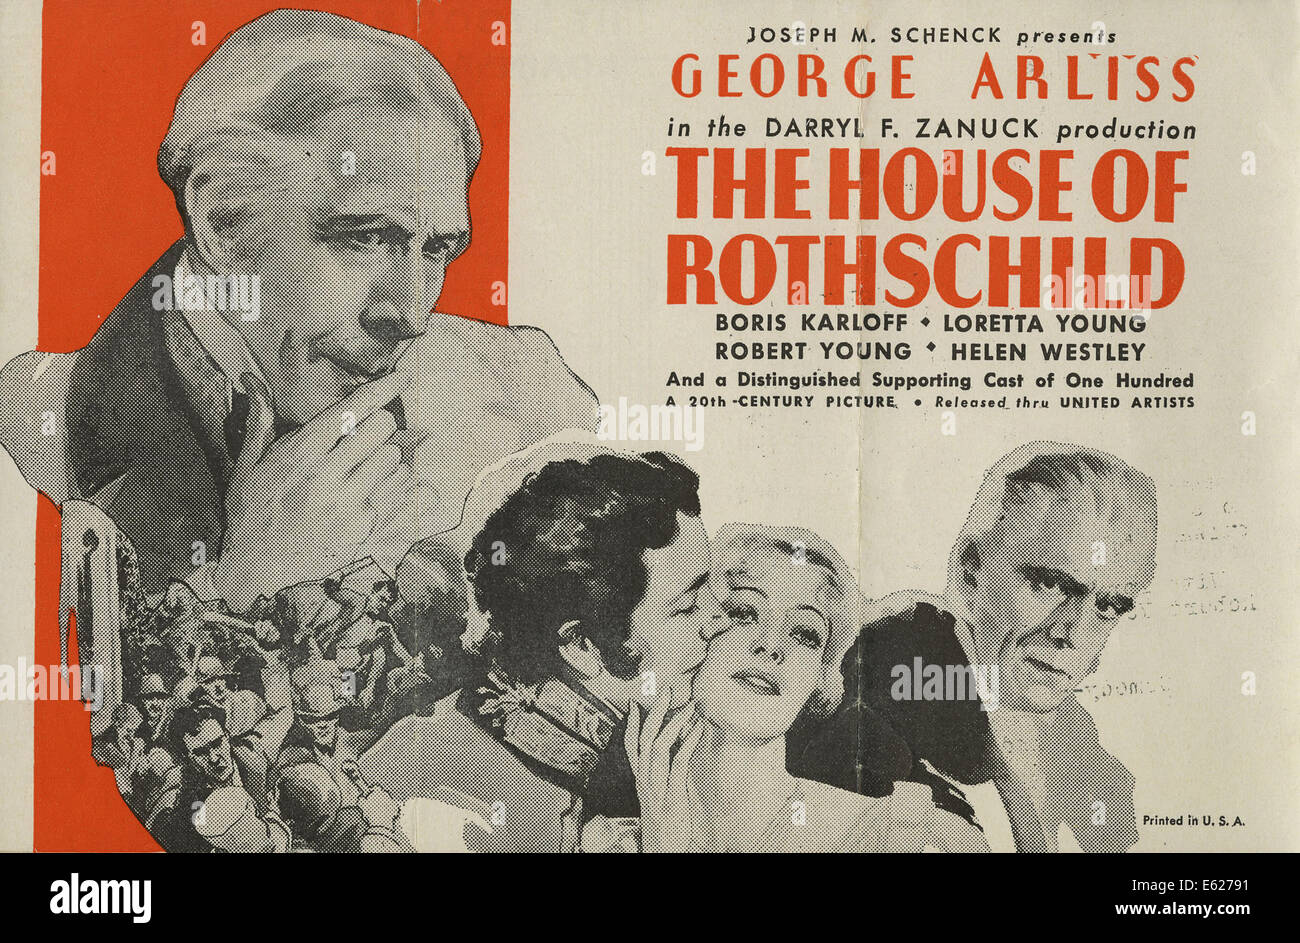 THE HOUSE OF ROTHSCHILD - Movie Poster- Directed by Alfred Werker - United Artists, 1934 - Stock Image